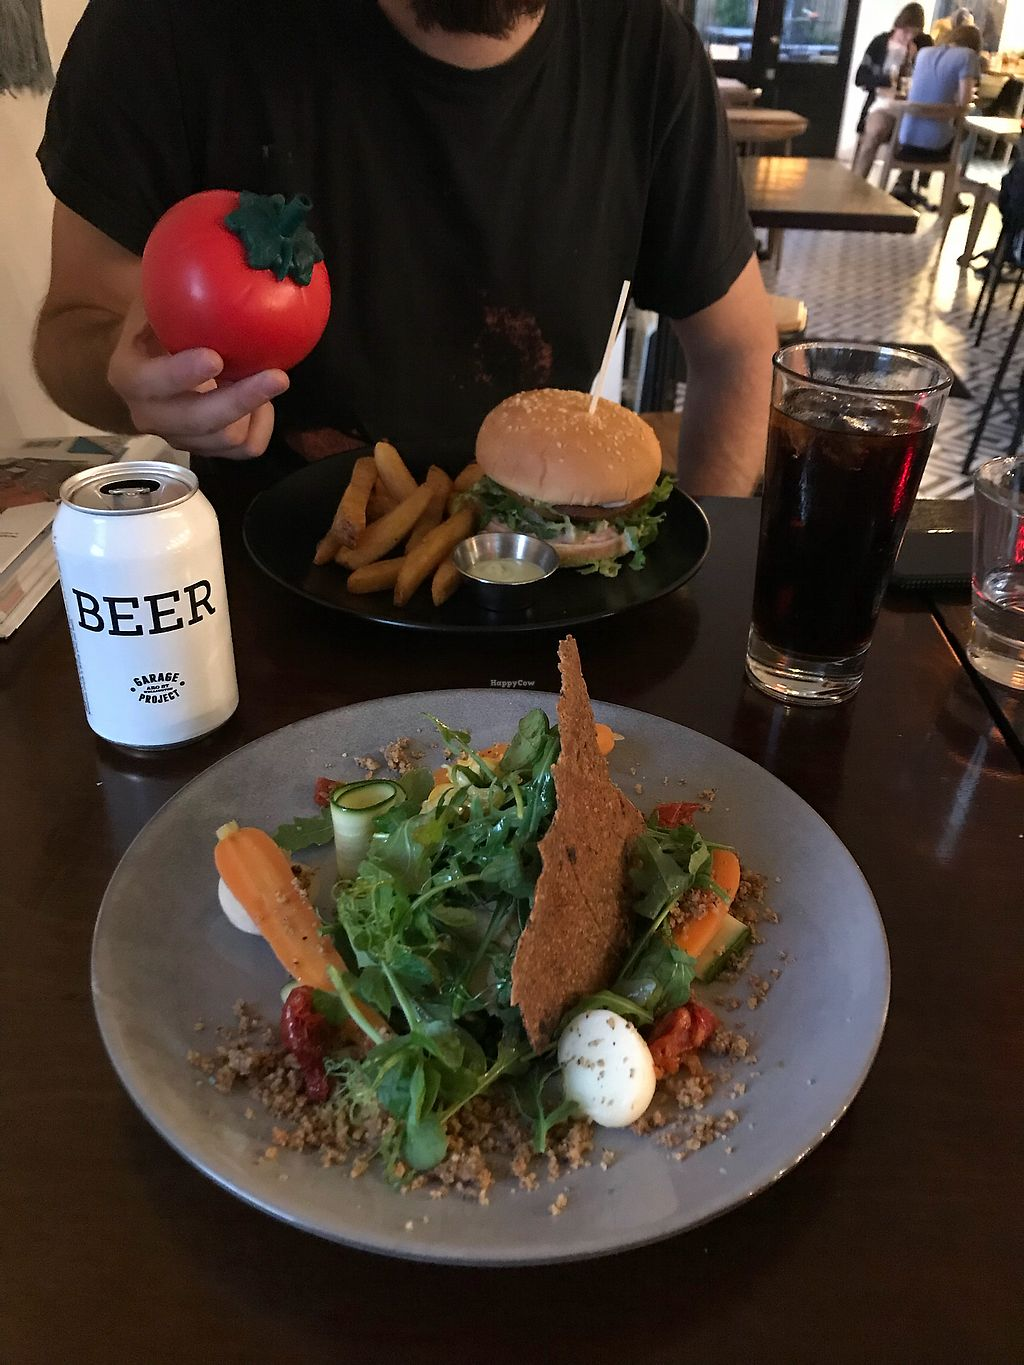 "Photo of The Botanist  by <a href=""/members/profile/Paolla"">Paolla</a> <br/>Stuffed aubergine with a local beer <br/> November 19, 2017  - <a href='/contact/abuse/image/88498/327204'>Report</a>"